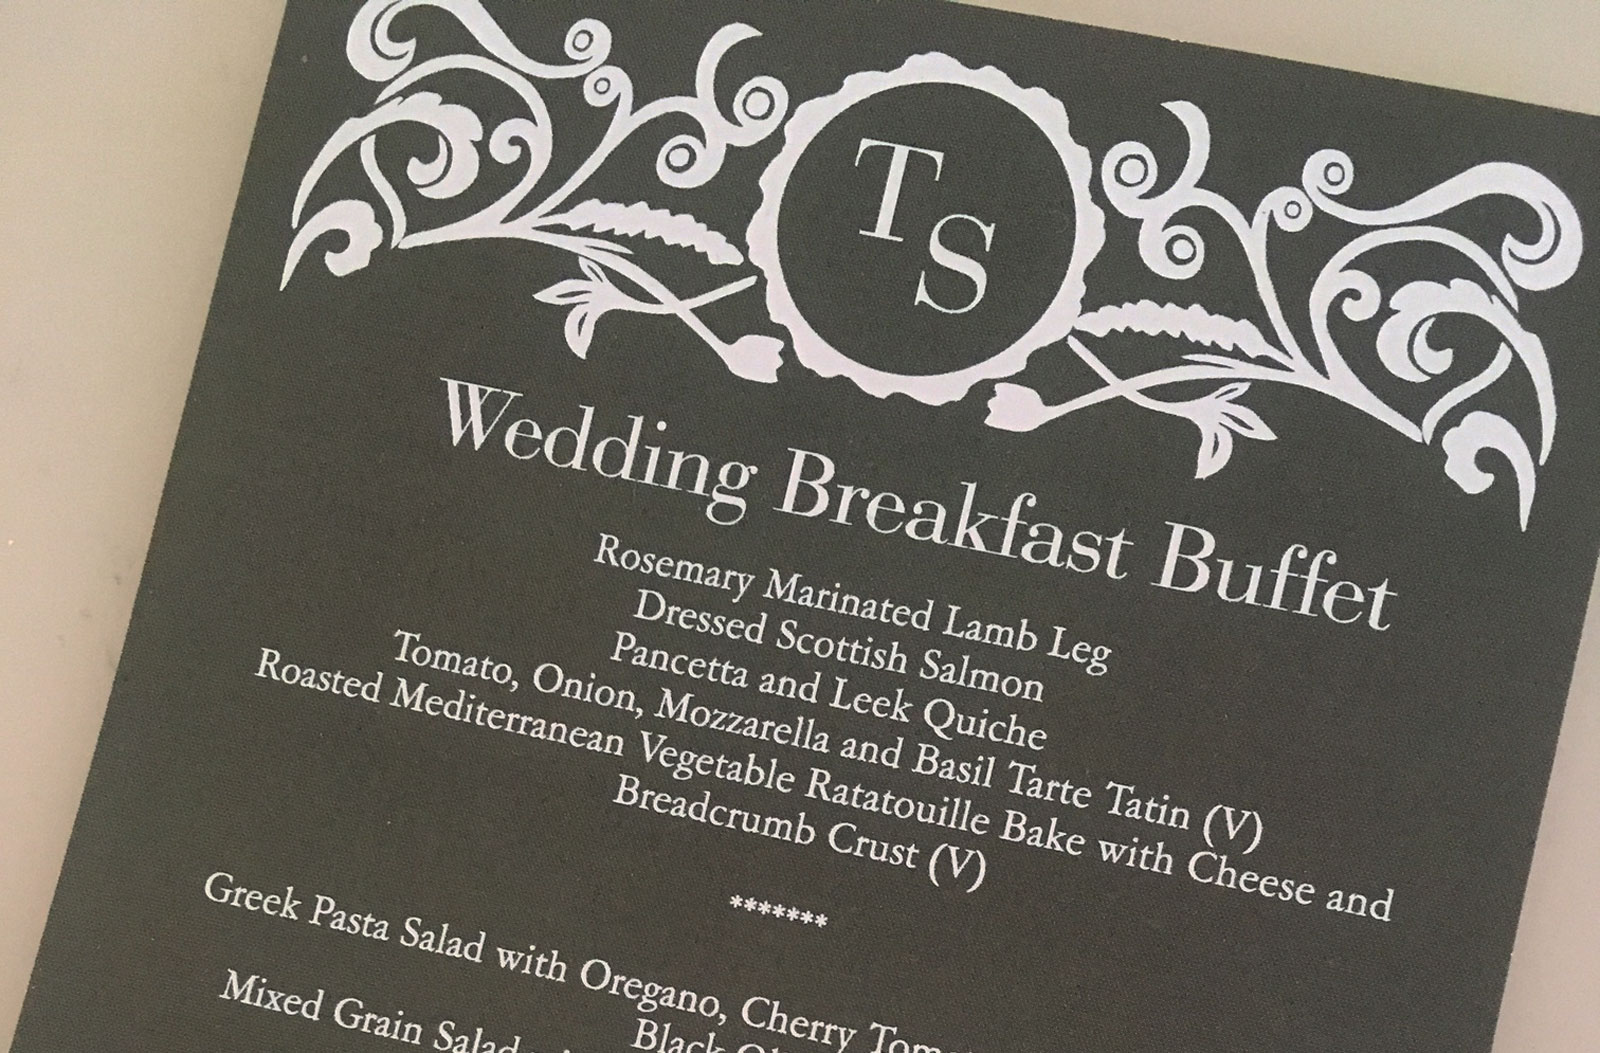 Suffolk catering sample menu